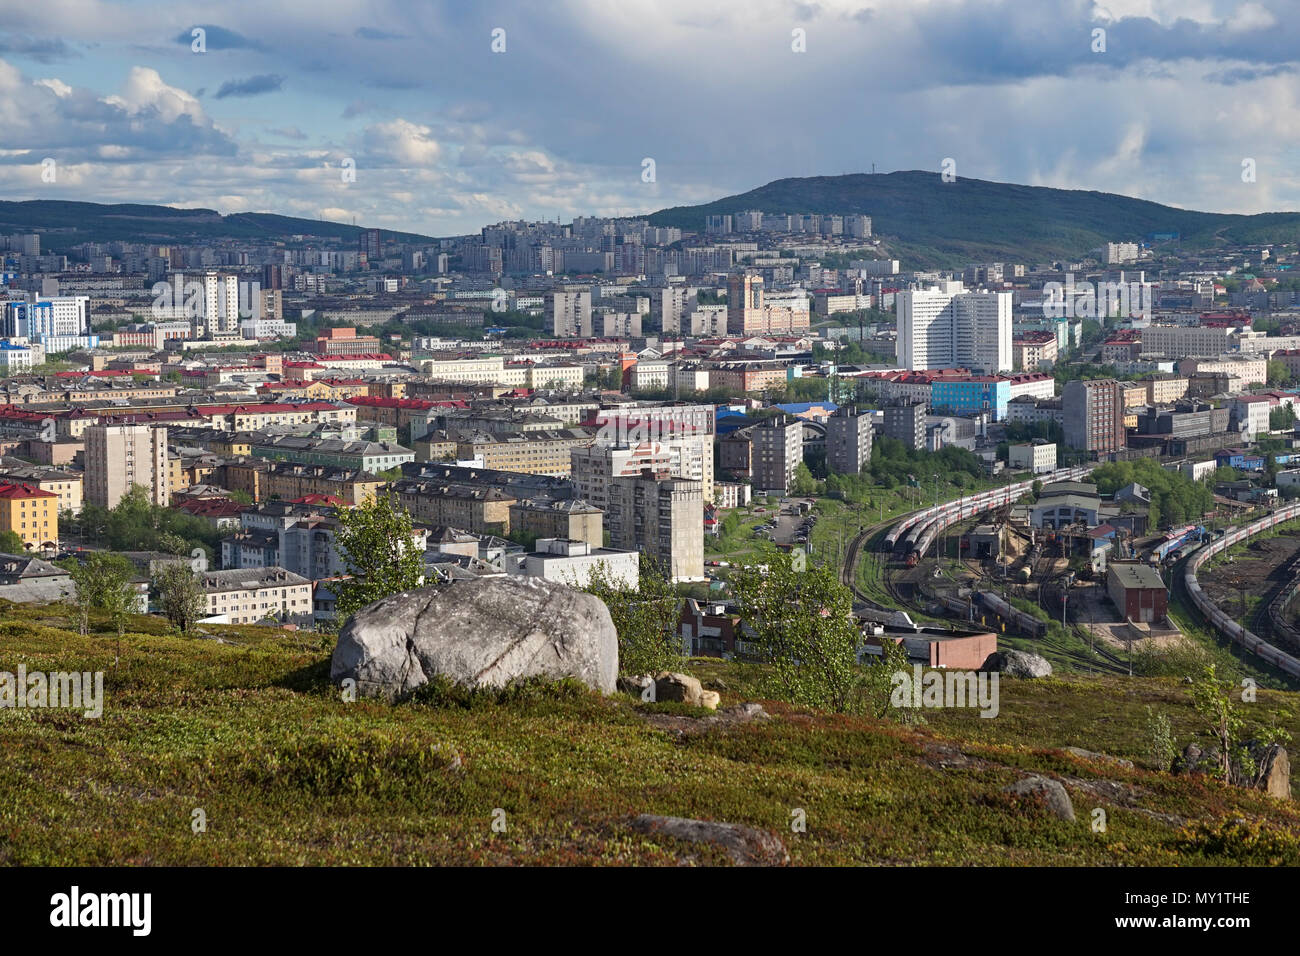 Murmansk, Russia-June 5, 2015: The urban landscape of the Murmansk Soviet architecture and the bright foliage of summer. - Stock Image